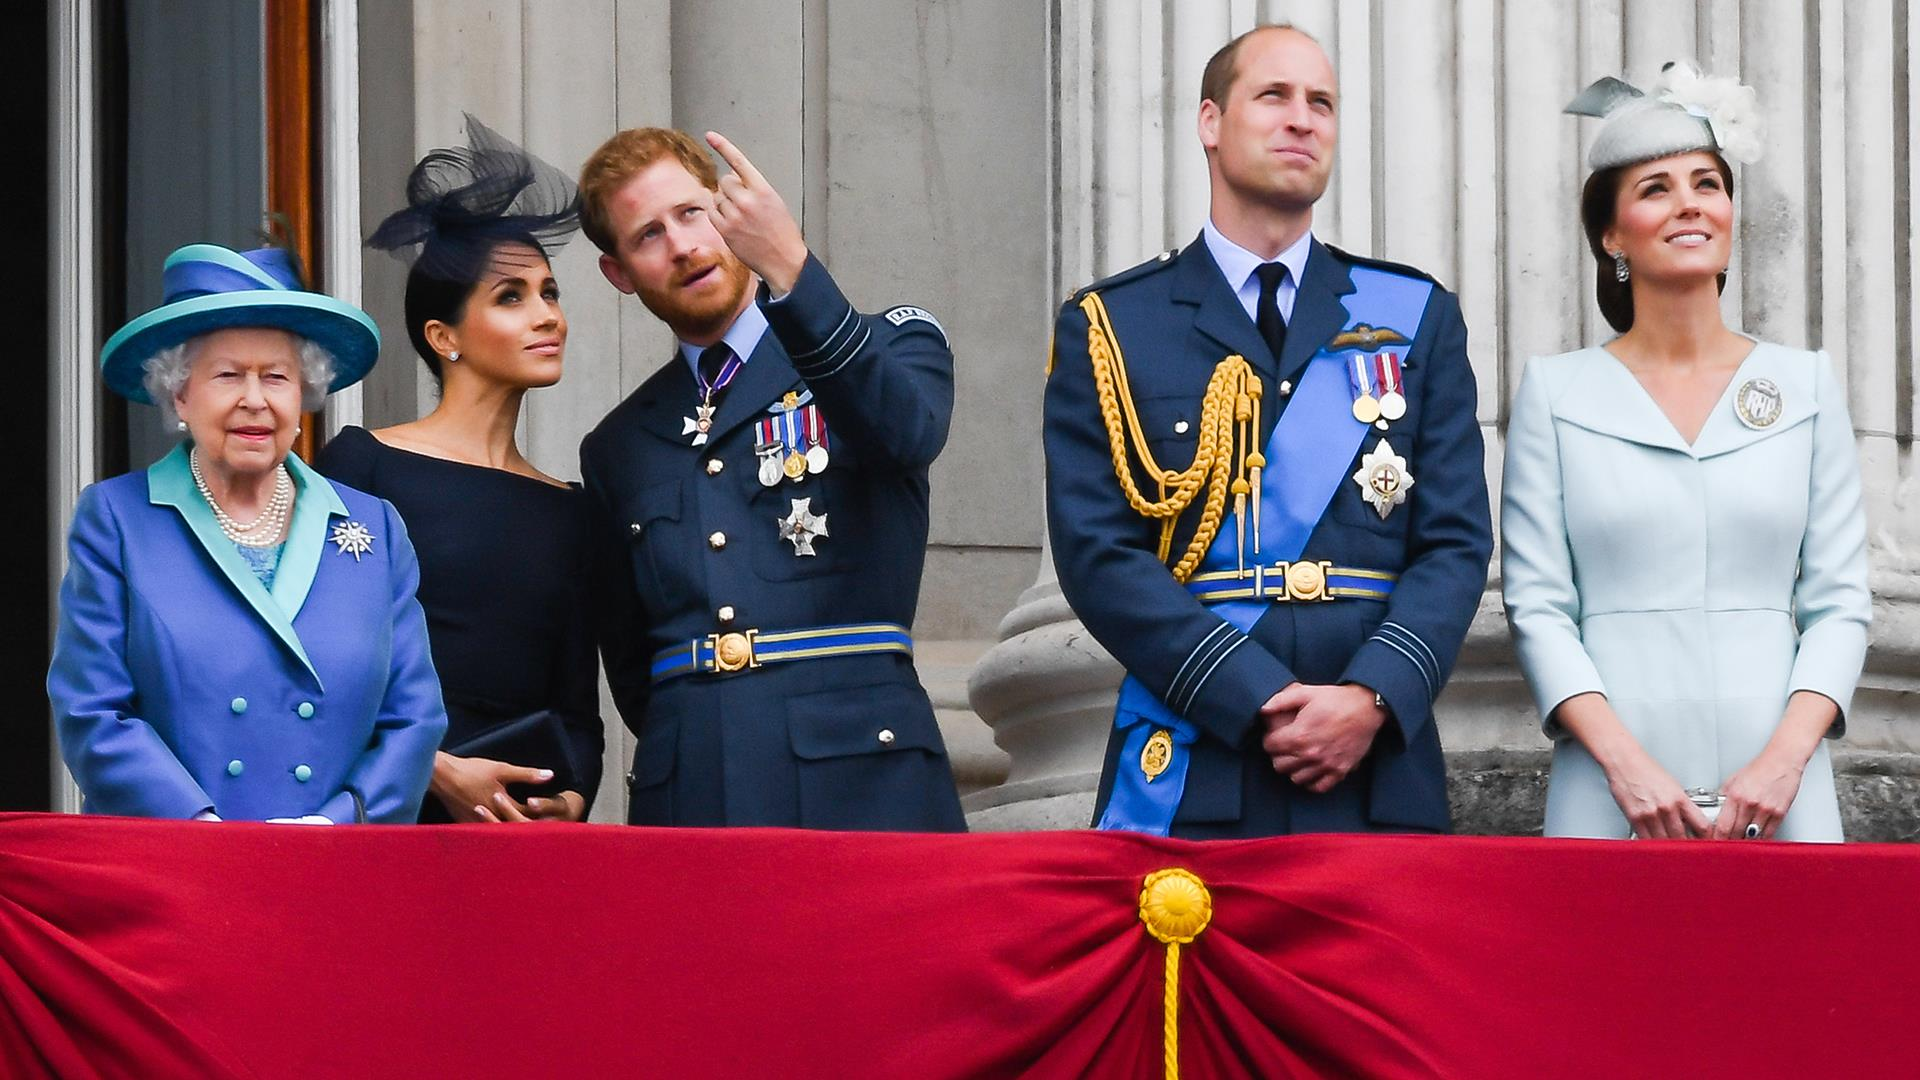 Queen, other senior royals want 'workable solution' for future of Harry and Meghan, report says